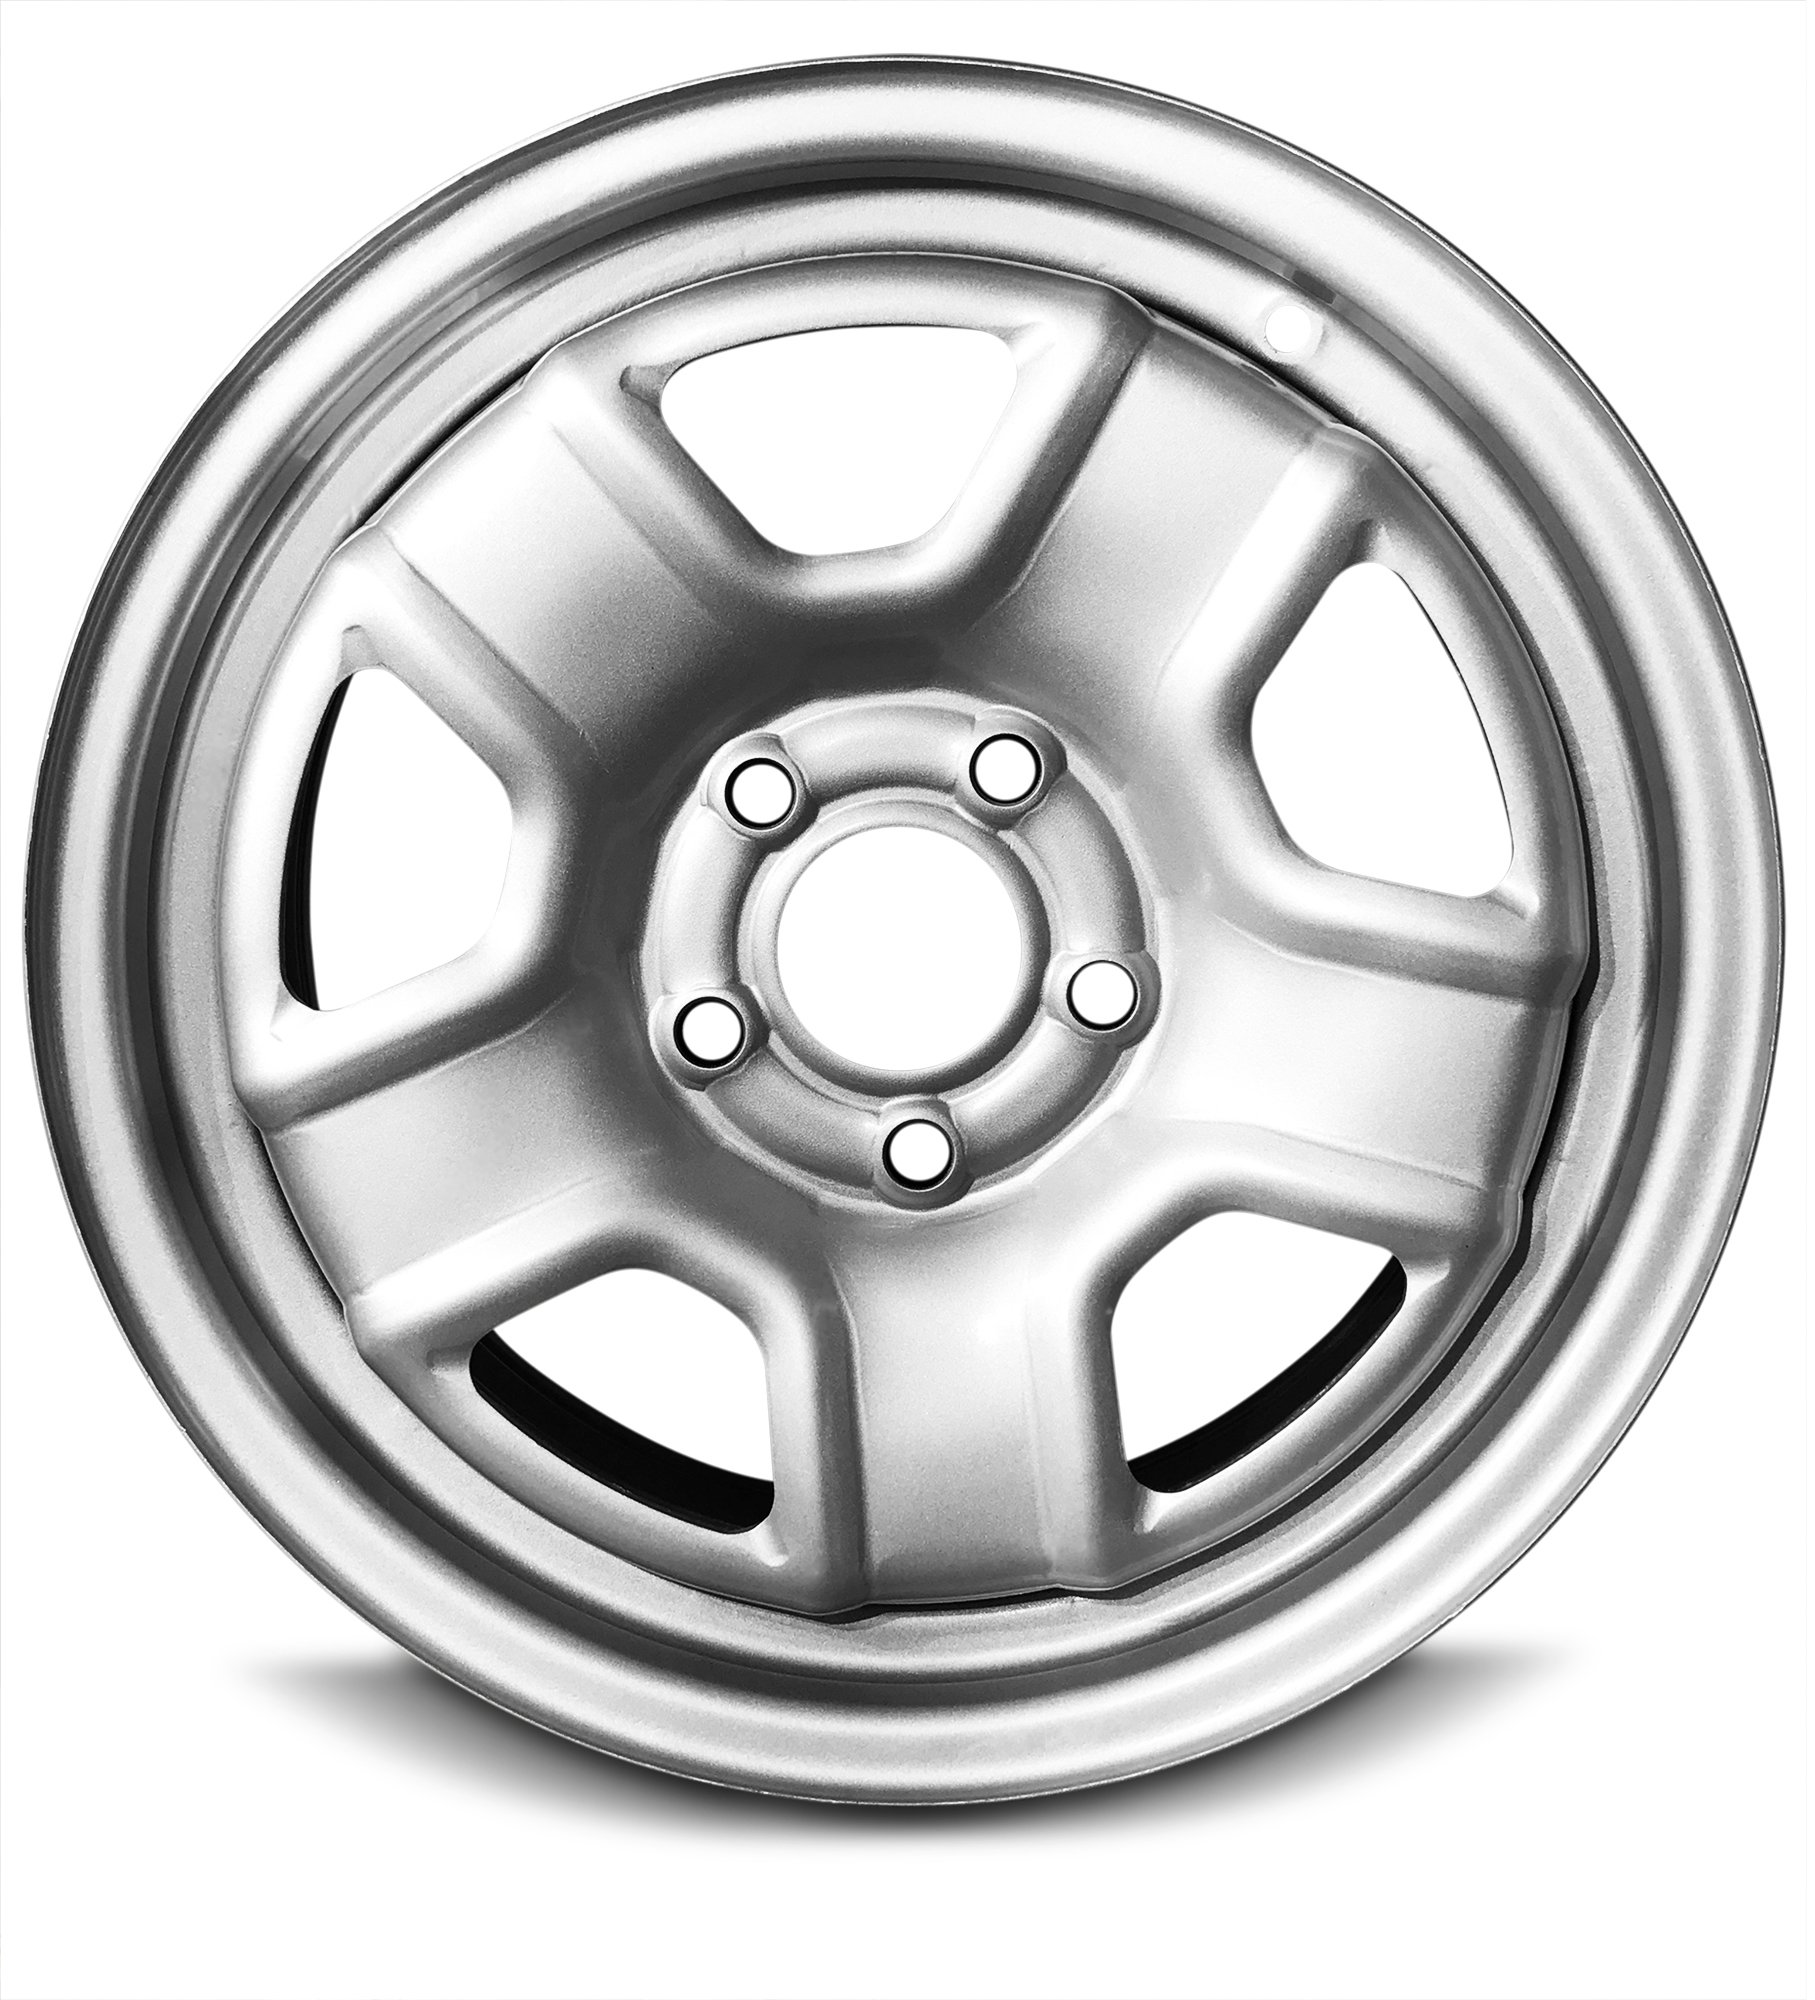 New 16 Inch Jeep Patriot Compass 5 Lug Silver Replacement Steel Wheel Rim 16x6.5 Inch 5 Lug 67.1mm Center Bore 40mm Offset WAA by Road Ready Wheels (Image #1)